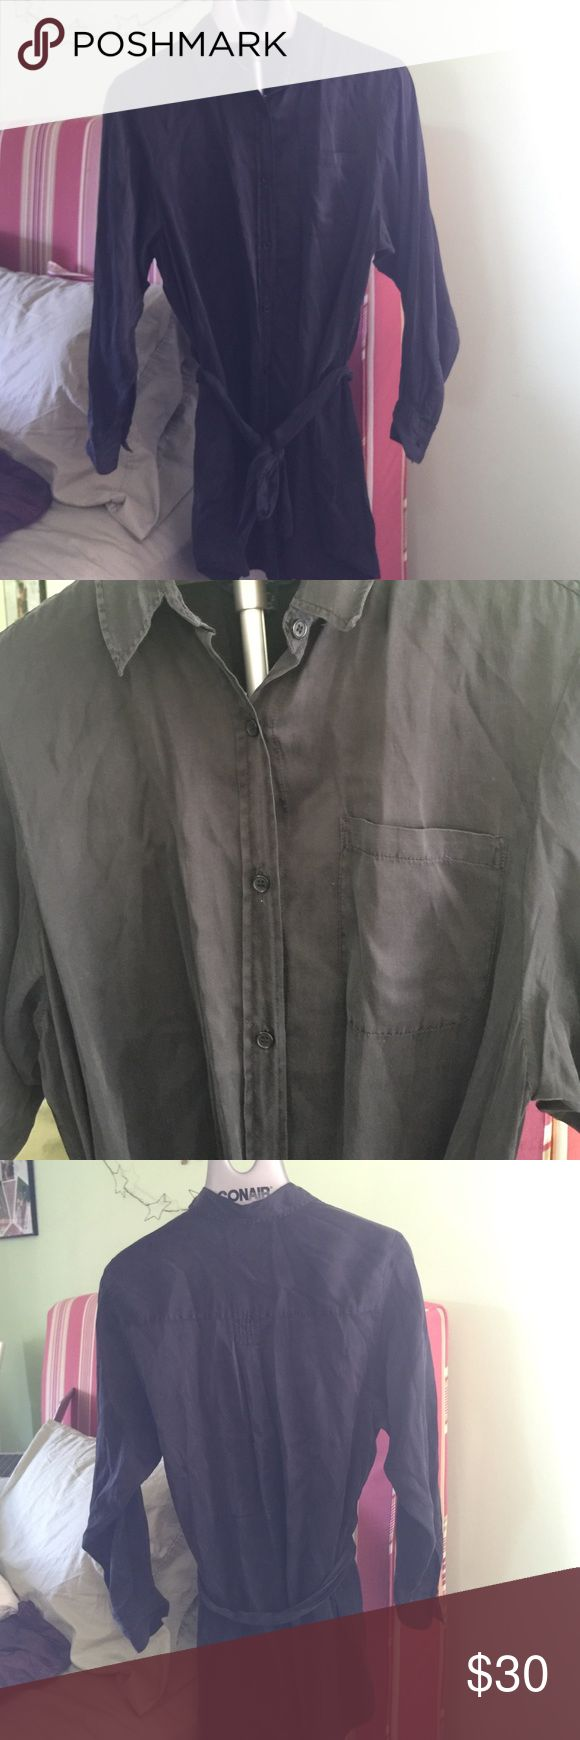 French Connection Black Button Down Dress Size 8 French Connection Black Button Down Dress Size 8. 55% Silk 45% Cotton. Perfect work dress, however definitely needs to be worn with tights or leggings. Please don't hesitate to ask any questions! :) French Connection Dresses Long Sleeve